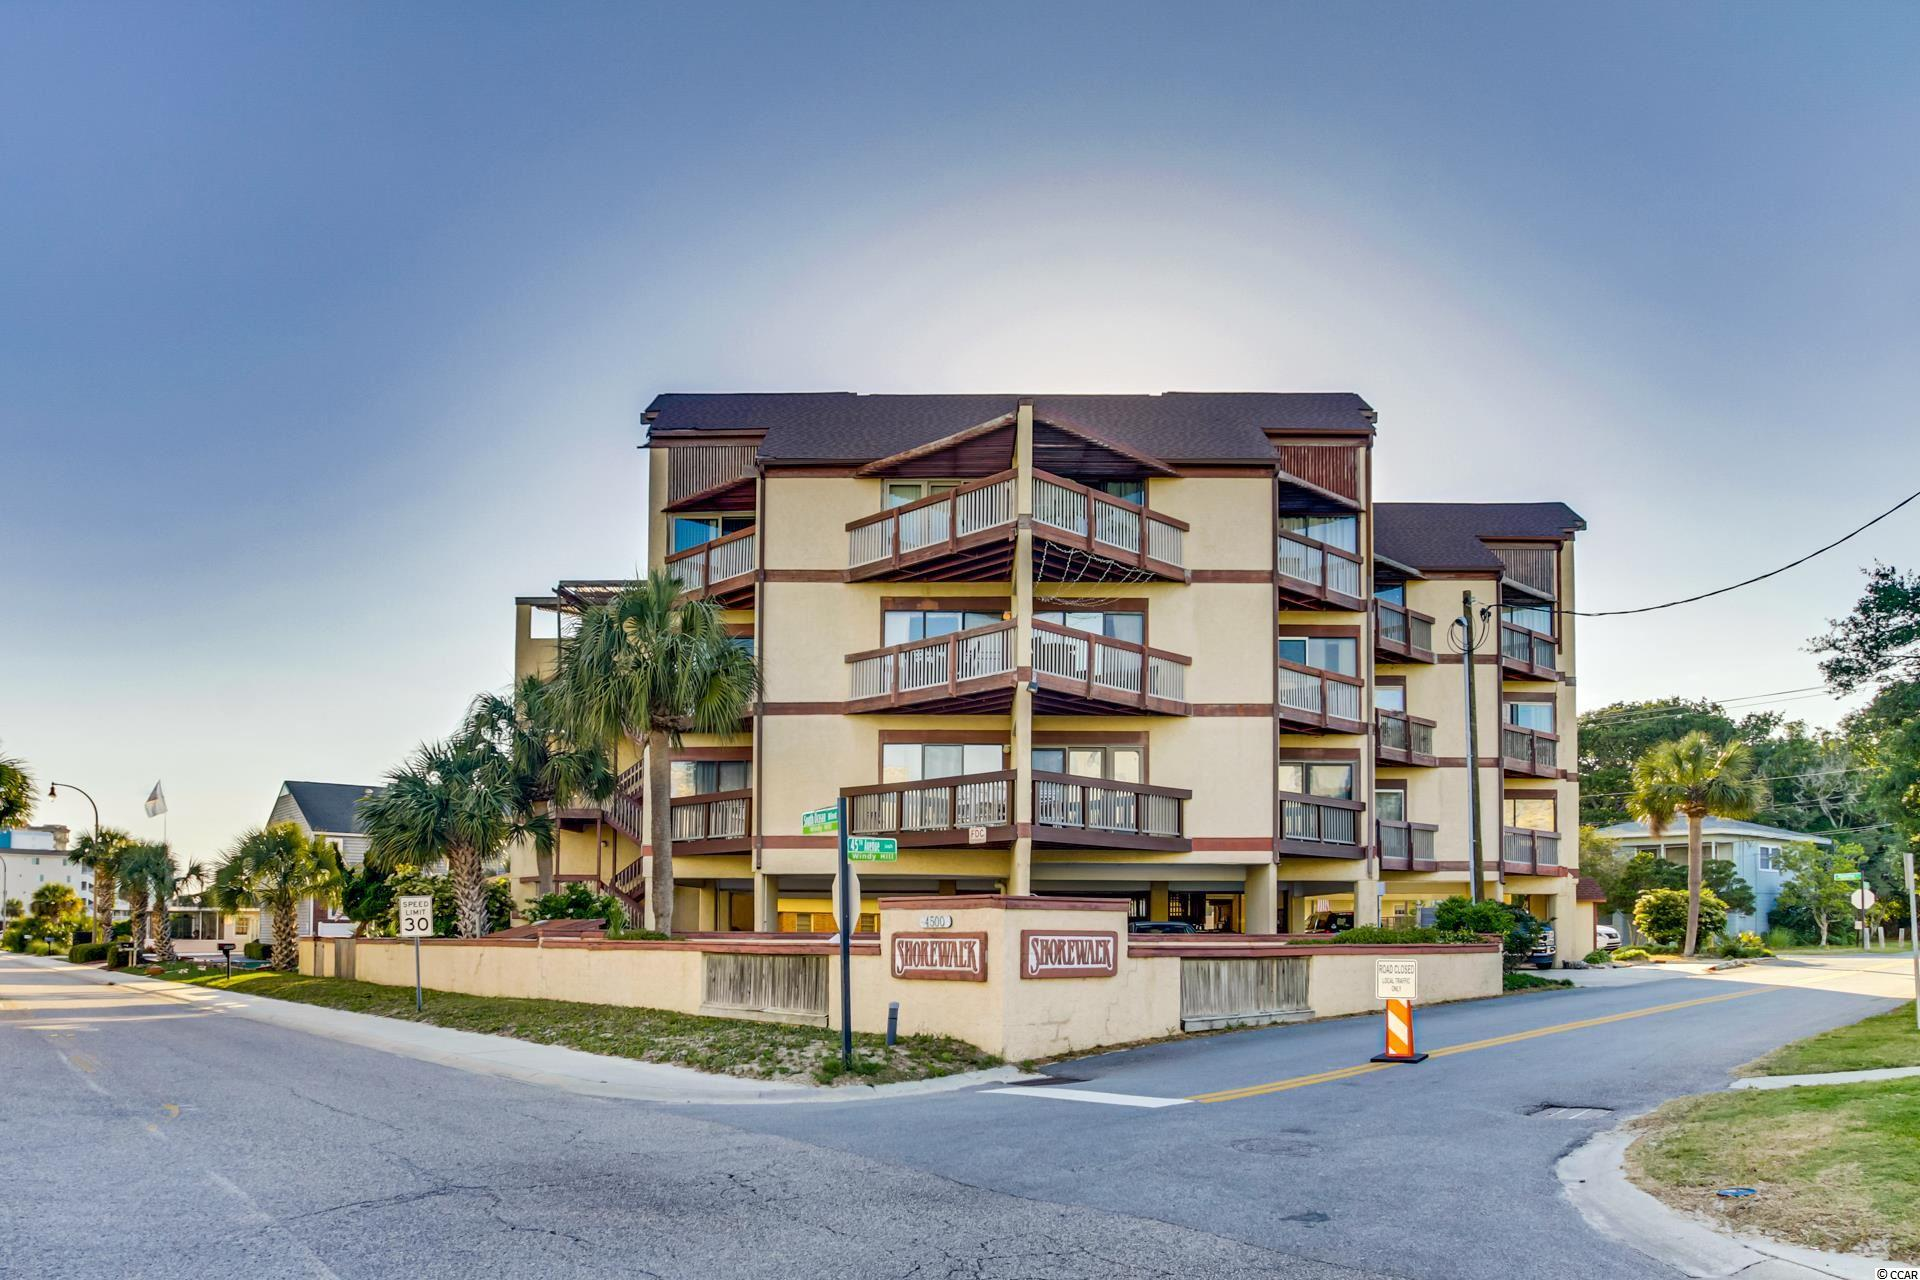 What an opportunity to own a beautifully renovated ocean view condo, second row, located in the Windy Hill Section of North Myrtle Beach.  There are so many extras in this unit, and the renovation is spectacular.  The kitchen has all new kitchen cabinets, granite countertops, touchless kitchen faucet, beautiful tile flooring throughout, all new Whirlpool stainless appliances, including a double oven, a wine fridge, beautiful farm sink, and a custom cabinet in the kitchen with large drawers for storage.  There is a new washer/dryer.  Both bathrooms have been renovated, including new plumbing in the walls, comfort height toilets, with new tile showers, hall bath has rain shower shower head while the master bath has a barn door entrance.  The living room has crown molding, and has a new queen sleeper sofa for those extra guests, along with all brand new furniture and a new flat screen TV.  The master has a king bed and the second bedroom has a queen size bed.  This is an elevator building, so having a unit on the top floor with no one above you is the best.  You will have to see this unit to appreciate the renovation.  Come and find your place at the beach with close beach access, you will be glad you did!